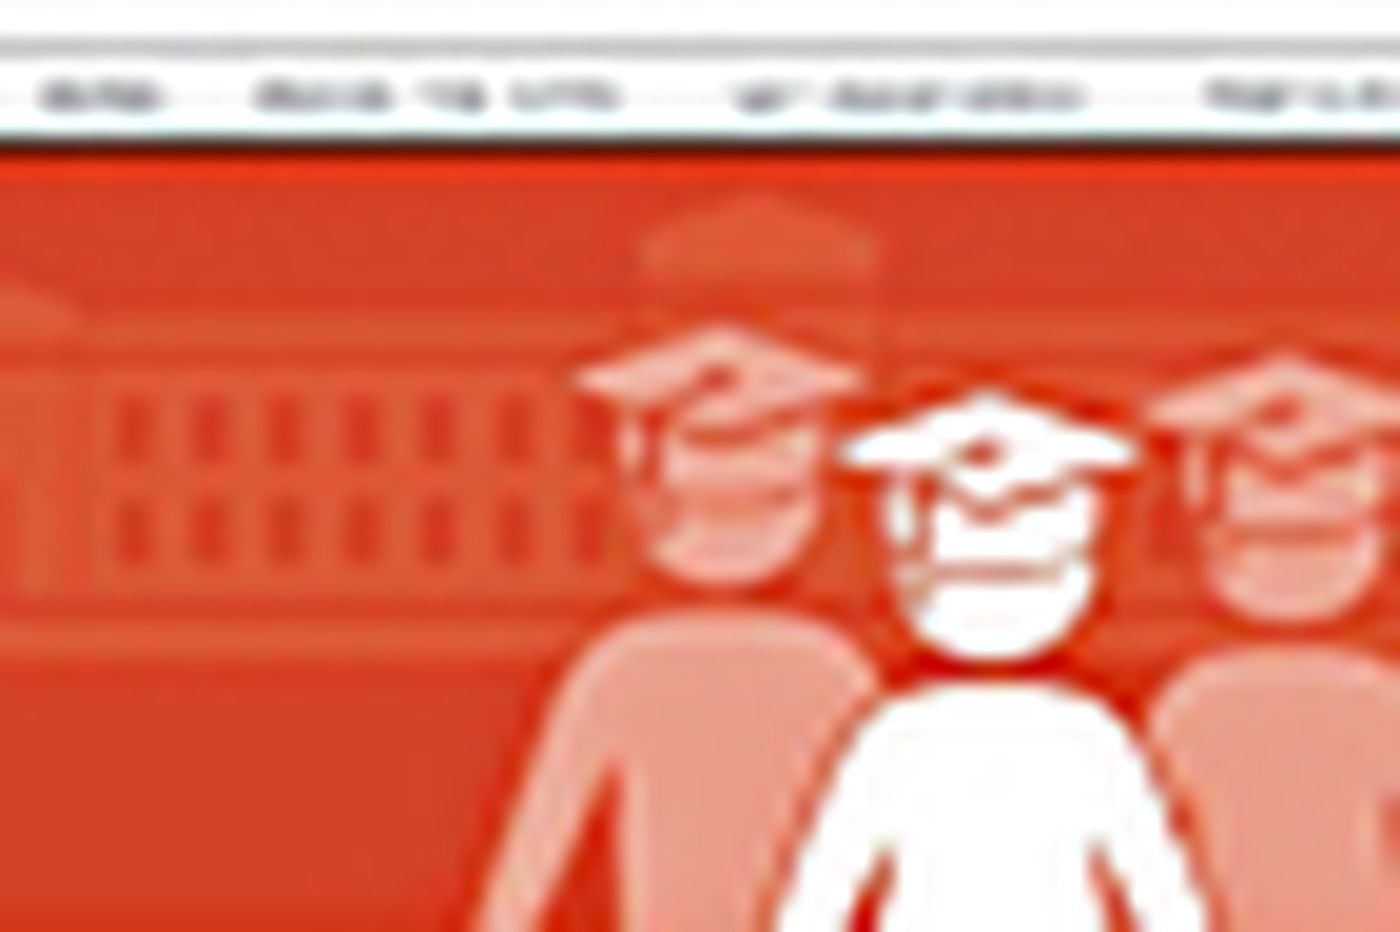 Web Wealth: College financial aid